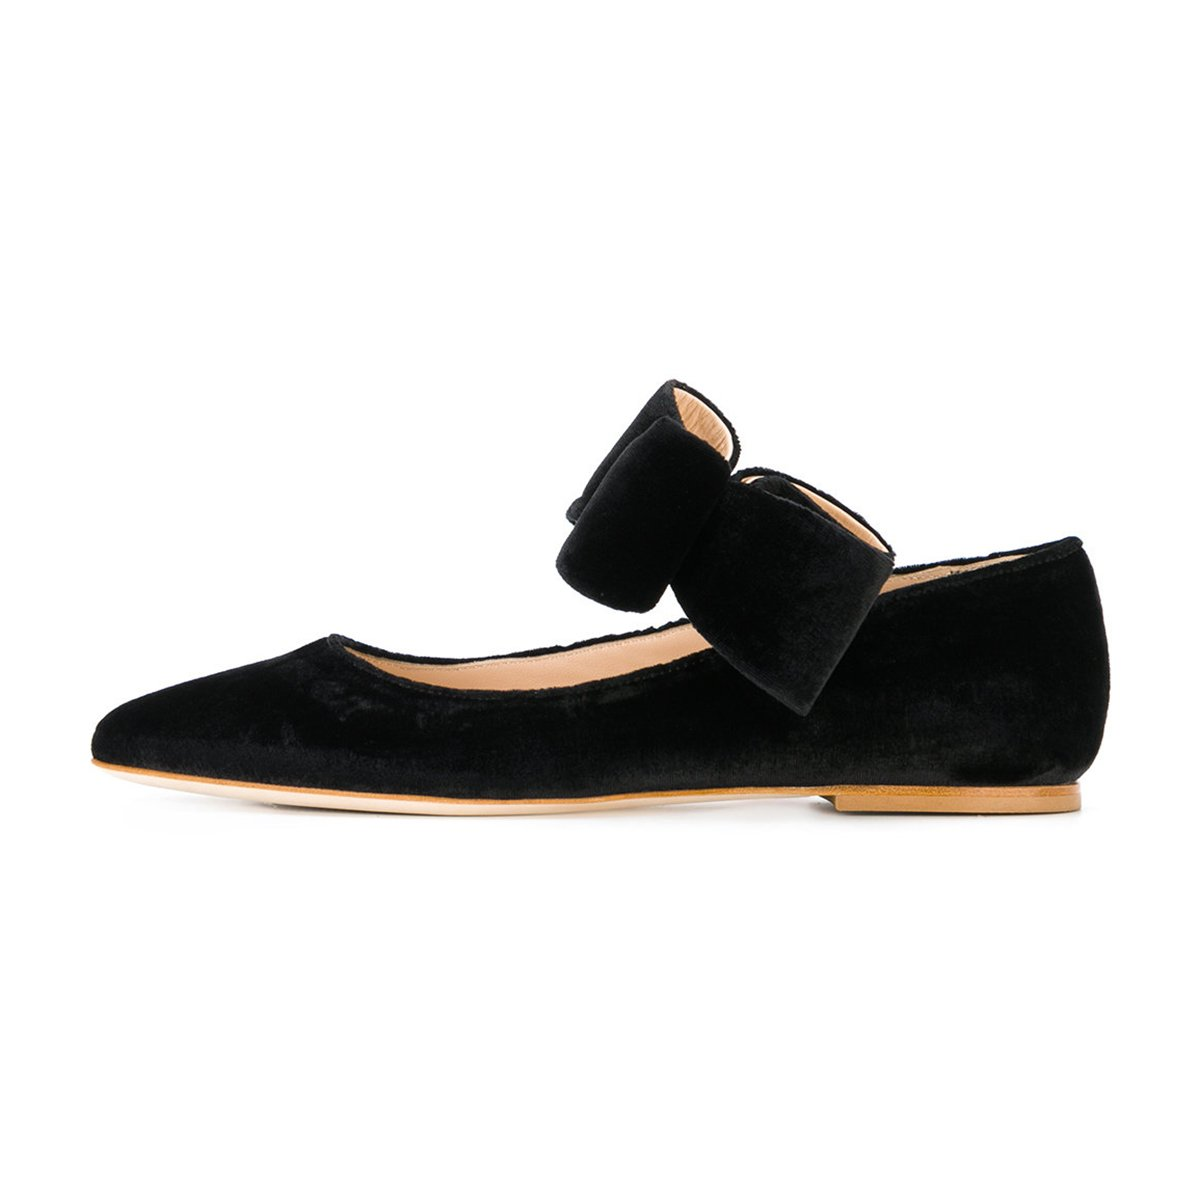 FSJ Women Cute Pointed Toe Flats With Bowknot On Velvet Low Heels Slip On Bowknot Comfy Shoes Size 4-15 US B076QBRQXG 6 B(M) US|Black 867813